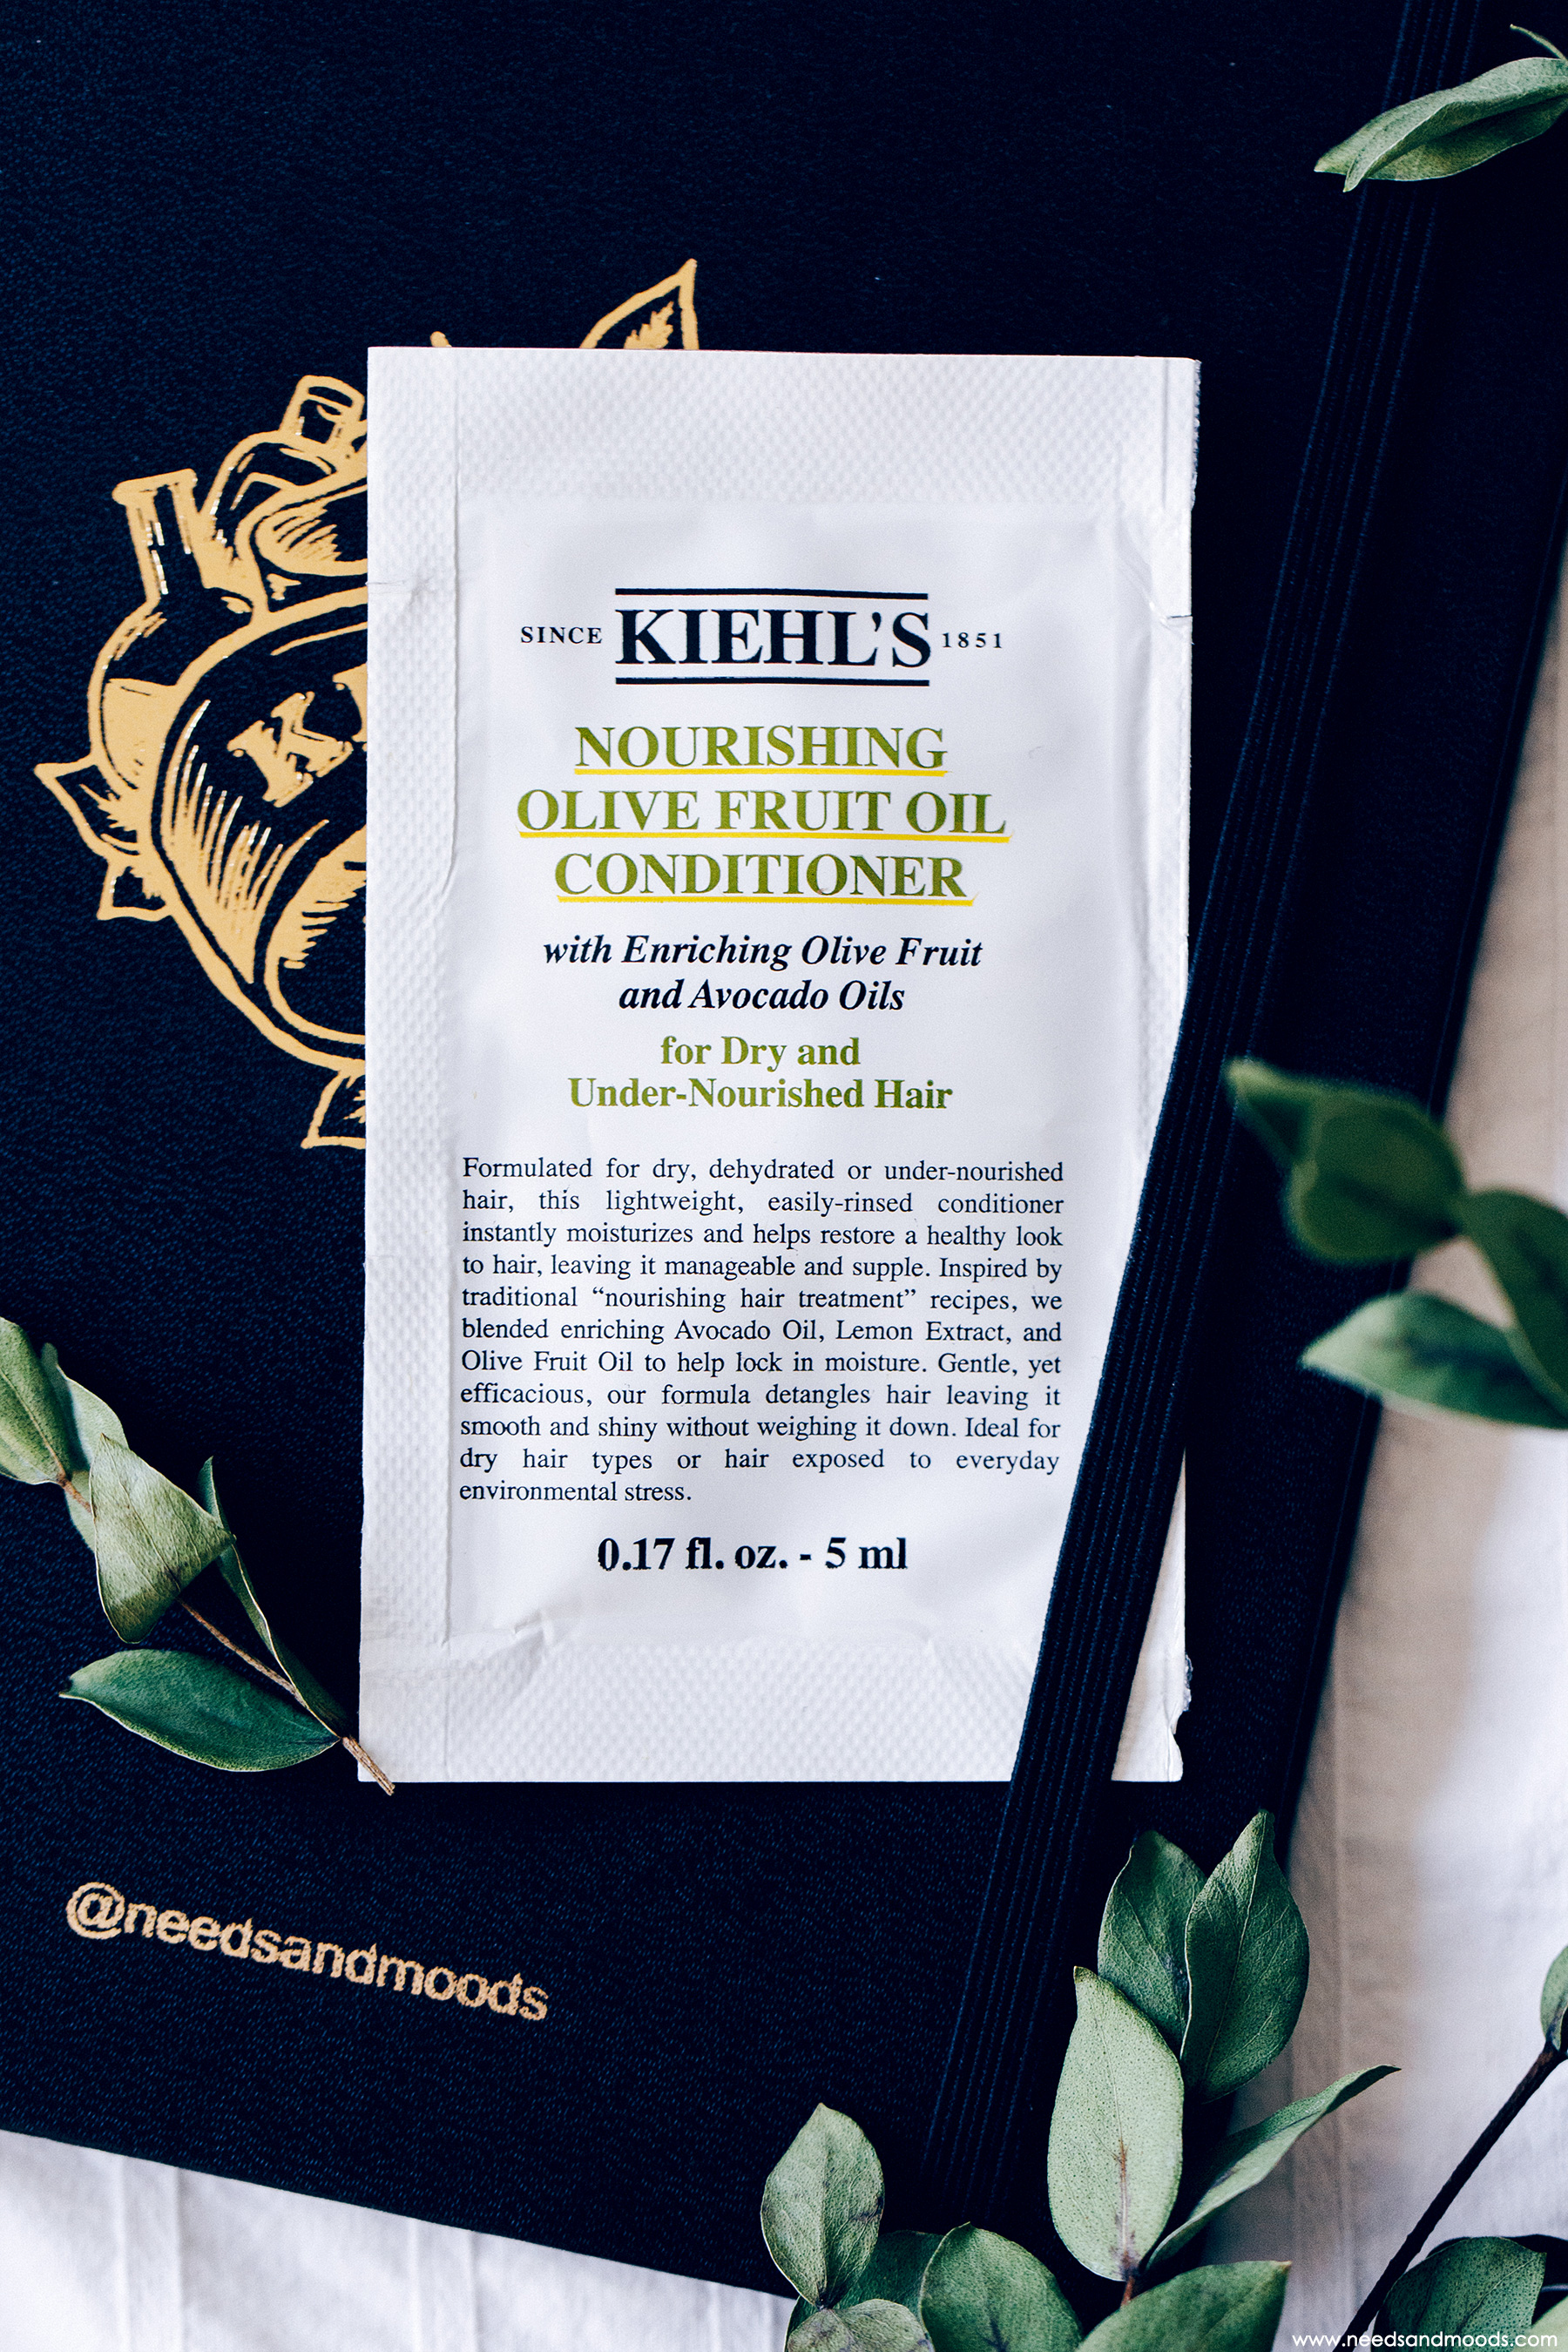 calendrier avent kiehls 2018 nourishing olive fruit oil conditioner